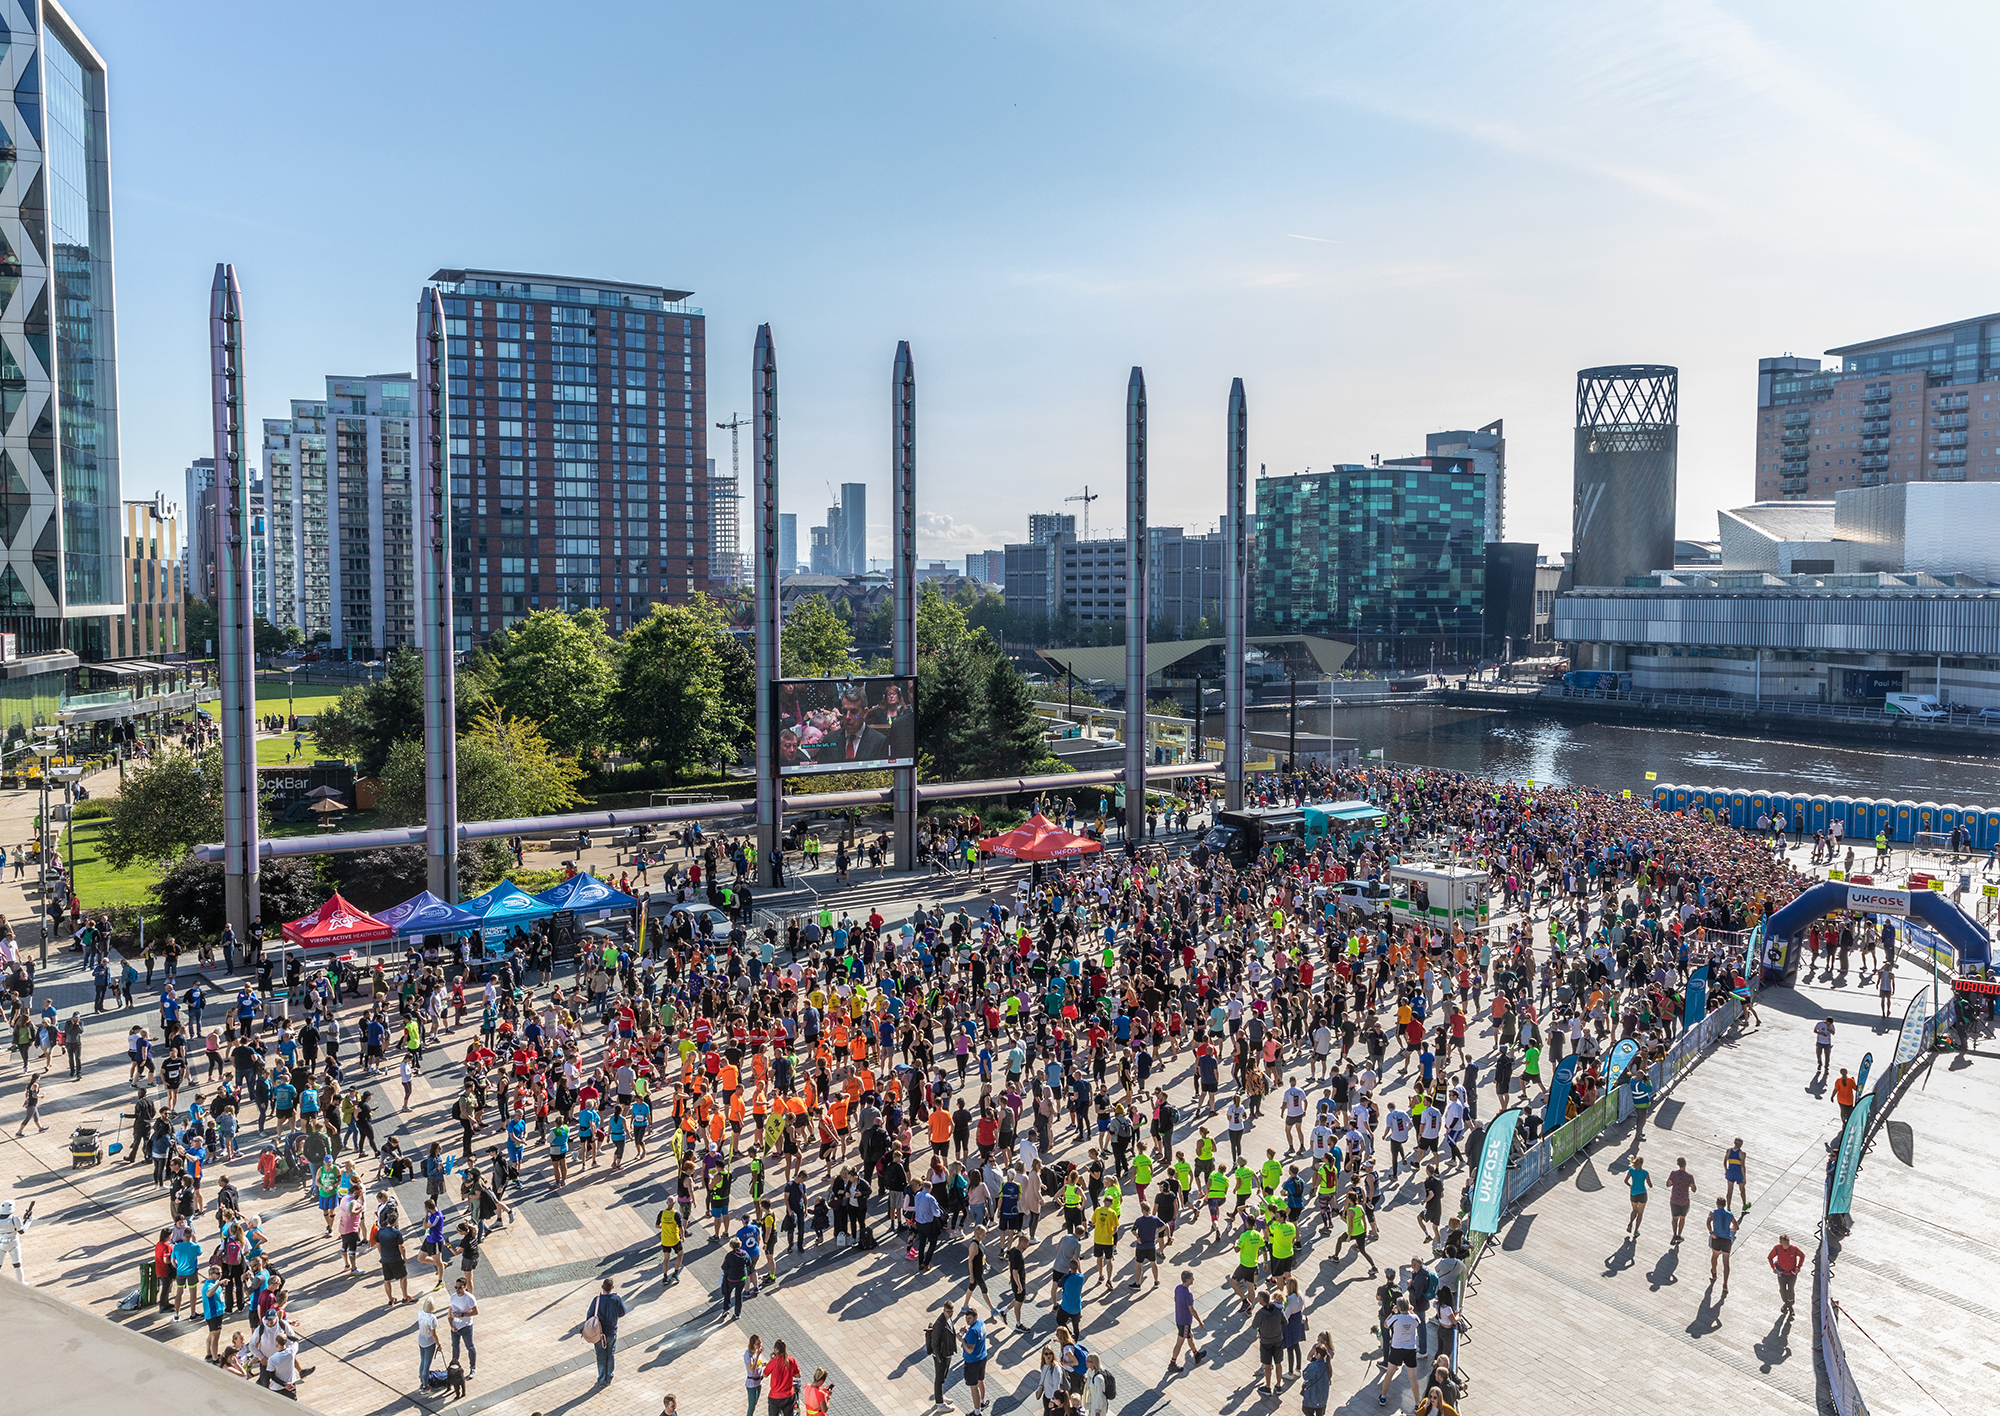 MediaCityUK is the start and finish point of the UKFast City of Salford 10k road race